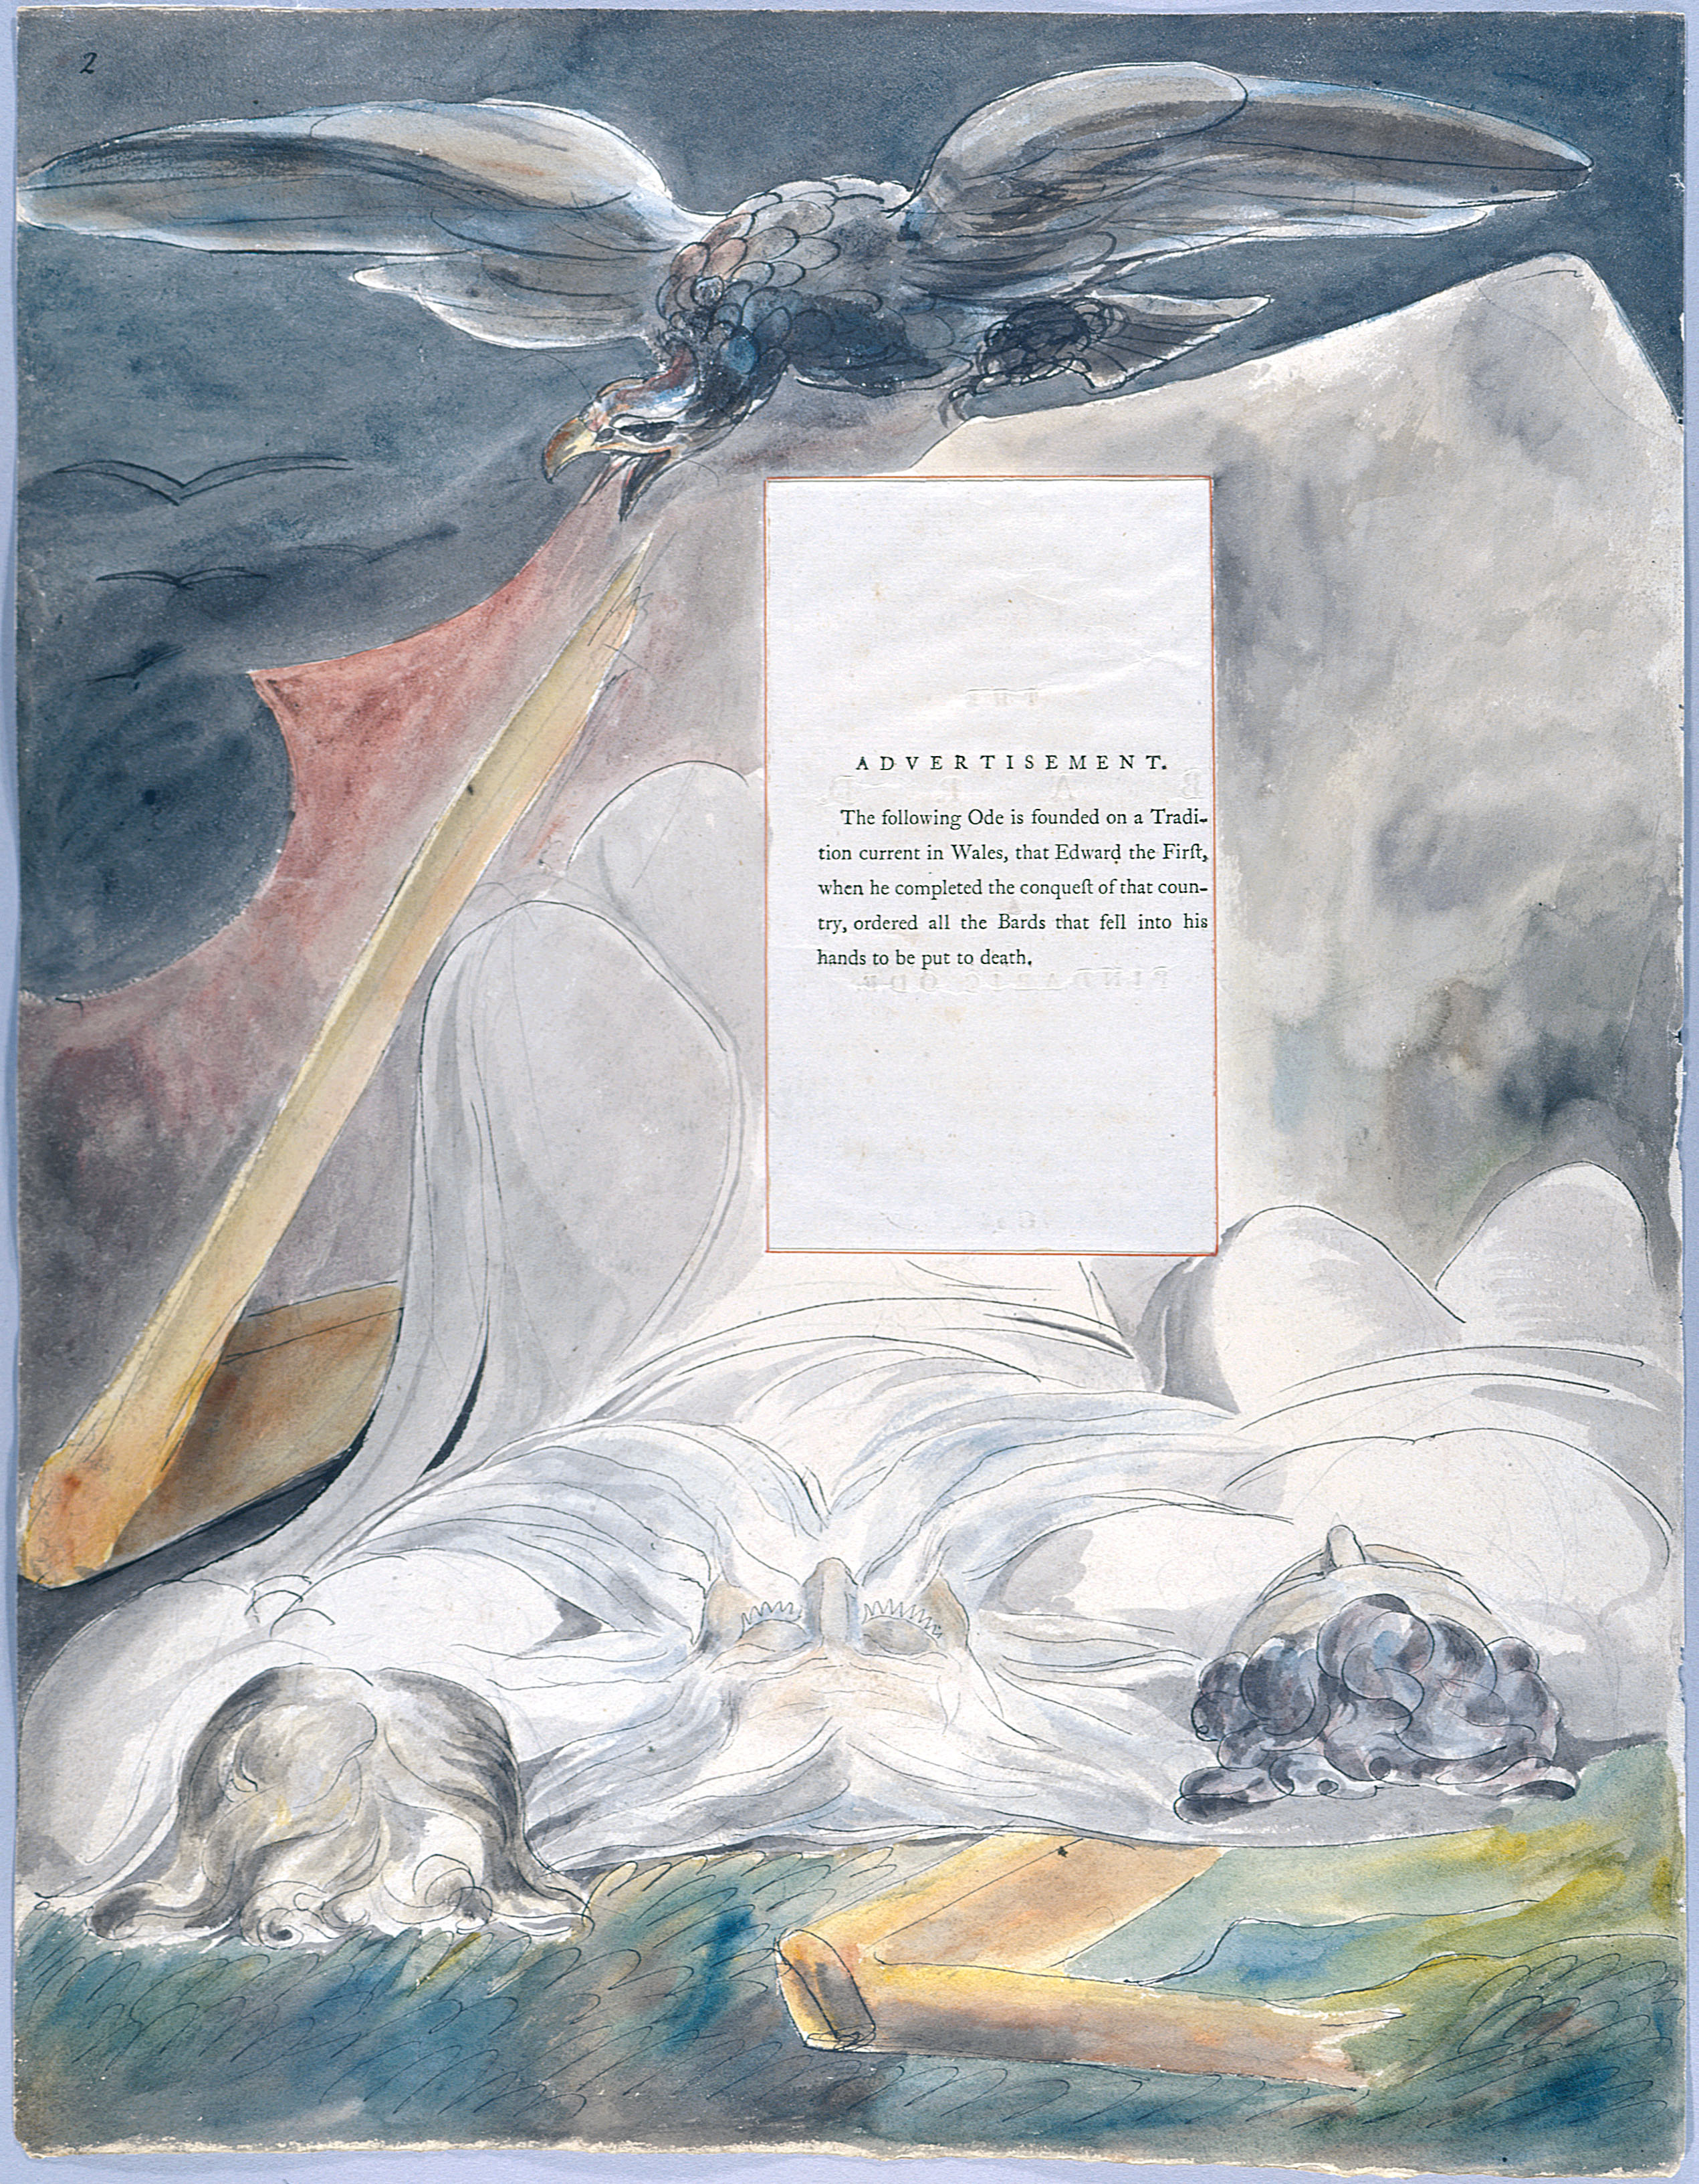 William Blake - The Poems of Thomas Gray, Design 54 The Bard 02.jpg